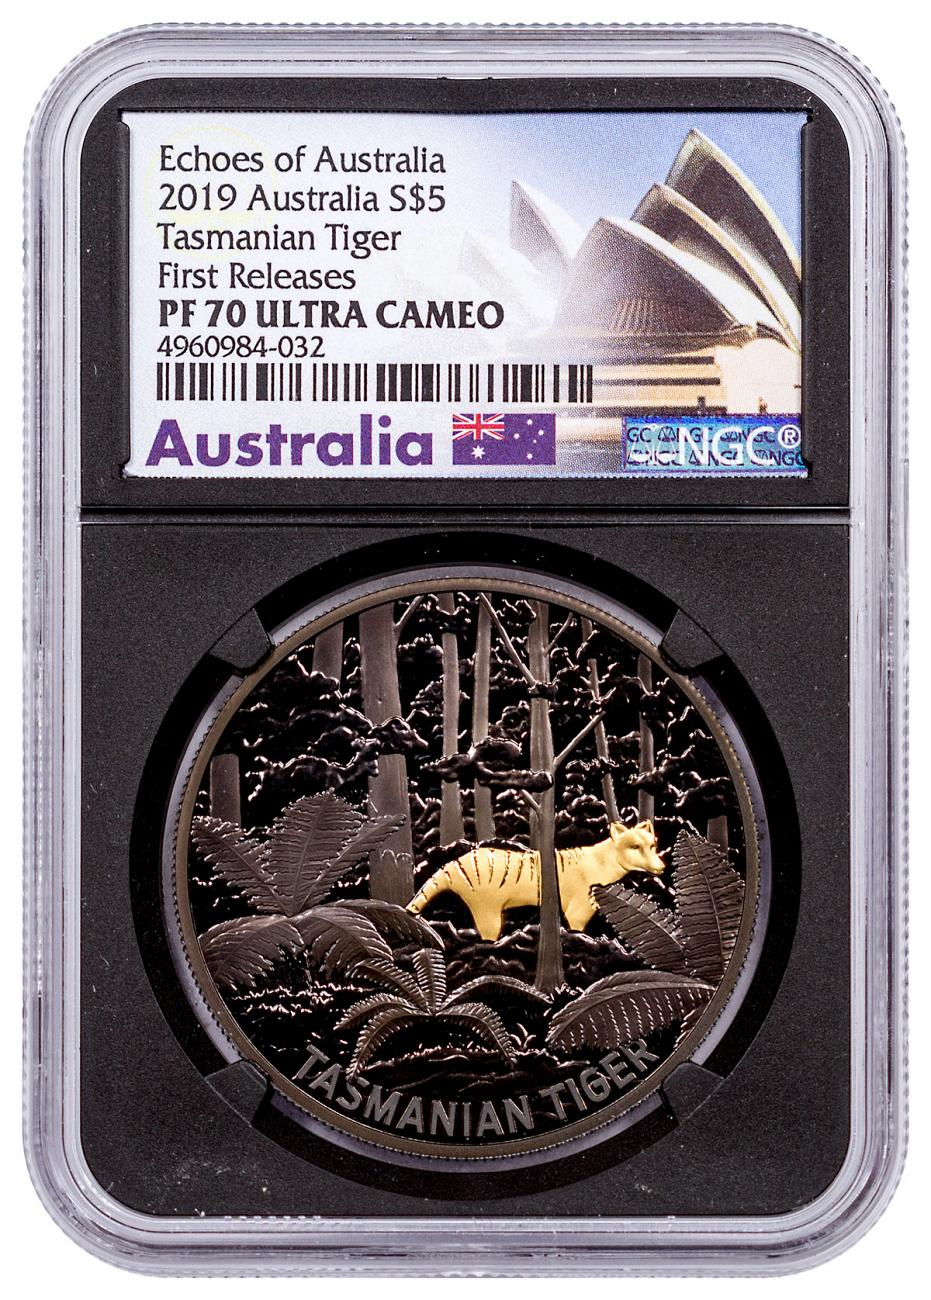 2019 Australia Echoes of Australia - Tasmanian Tiger 1 oz Silver Nickel-Plated Select Gold Proof $5 Coin NGC PF70 UC FR Black Core Holder Exclusive Australia Label